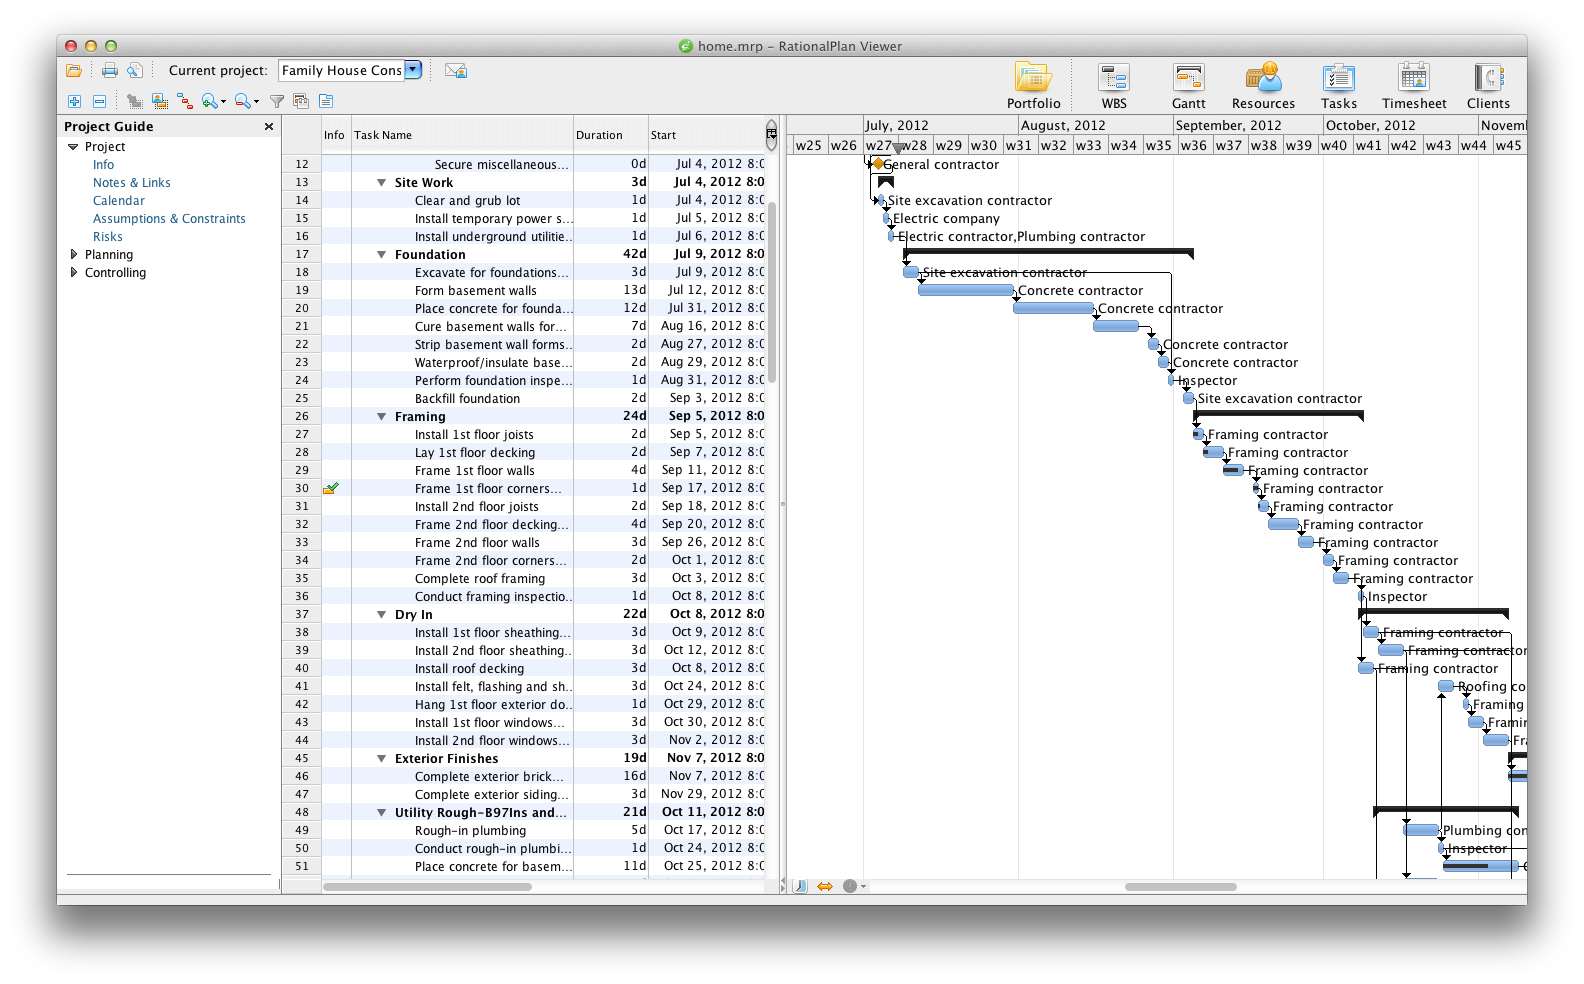 RationalPlan Project Viewer for Mac 5.3.7811 full